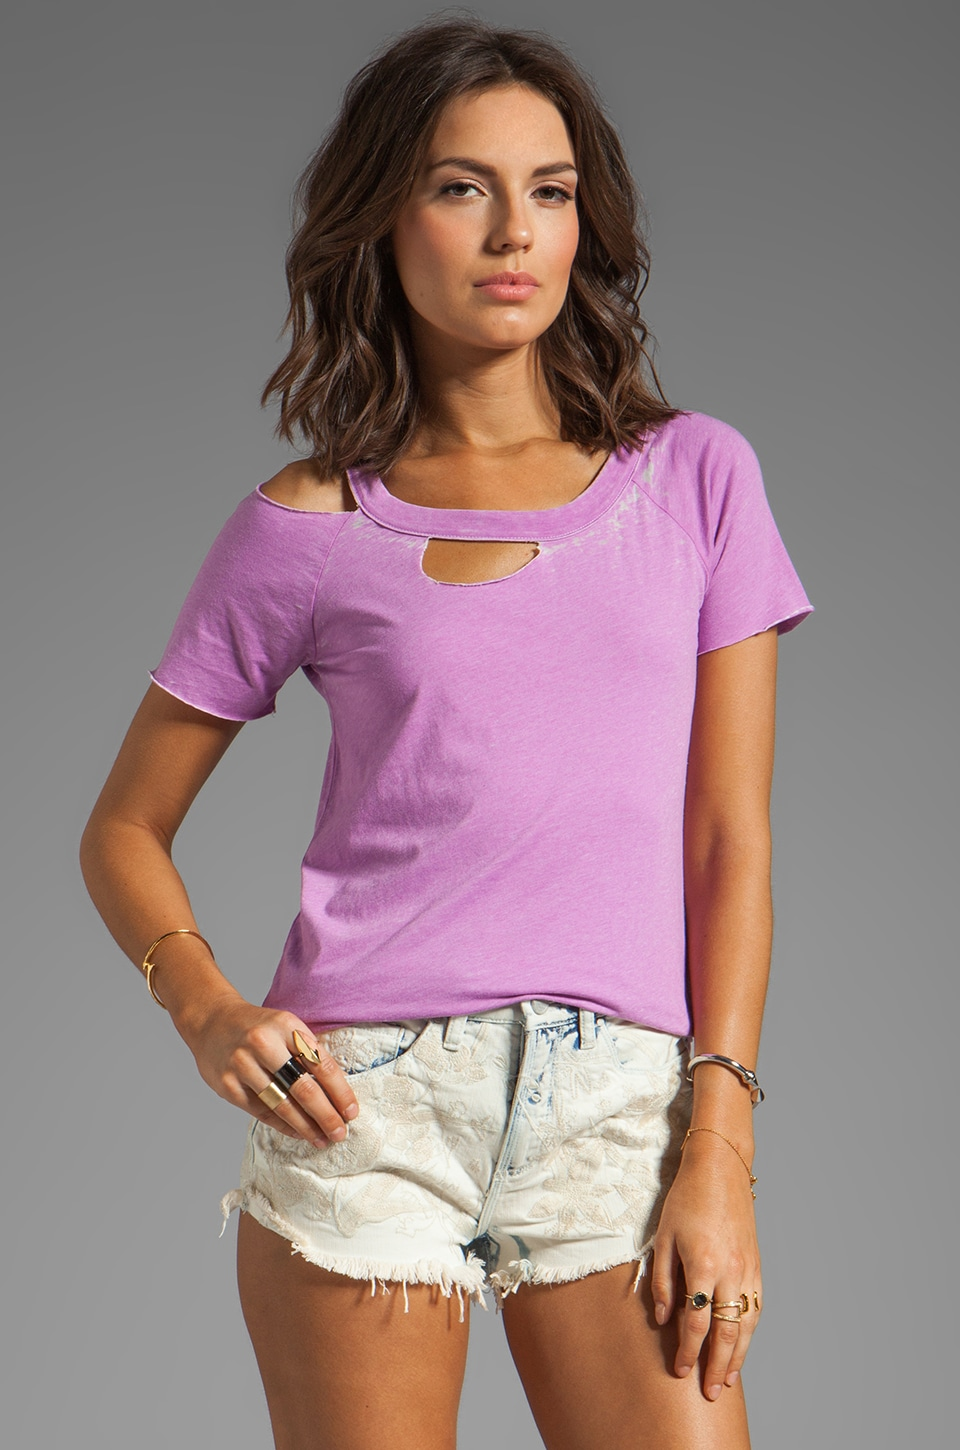 Chaser Vintage Jersey S/S Deconstructed Tee in Wild Orchid